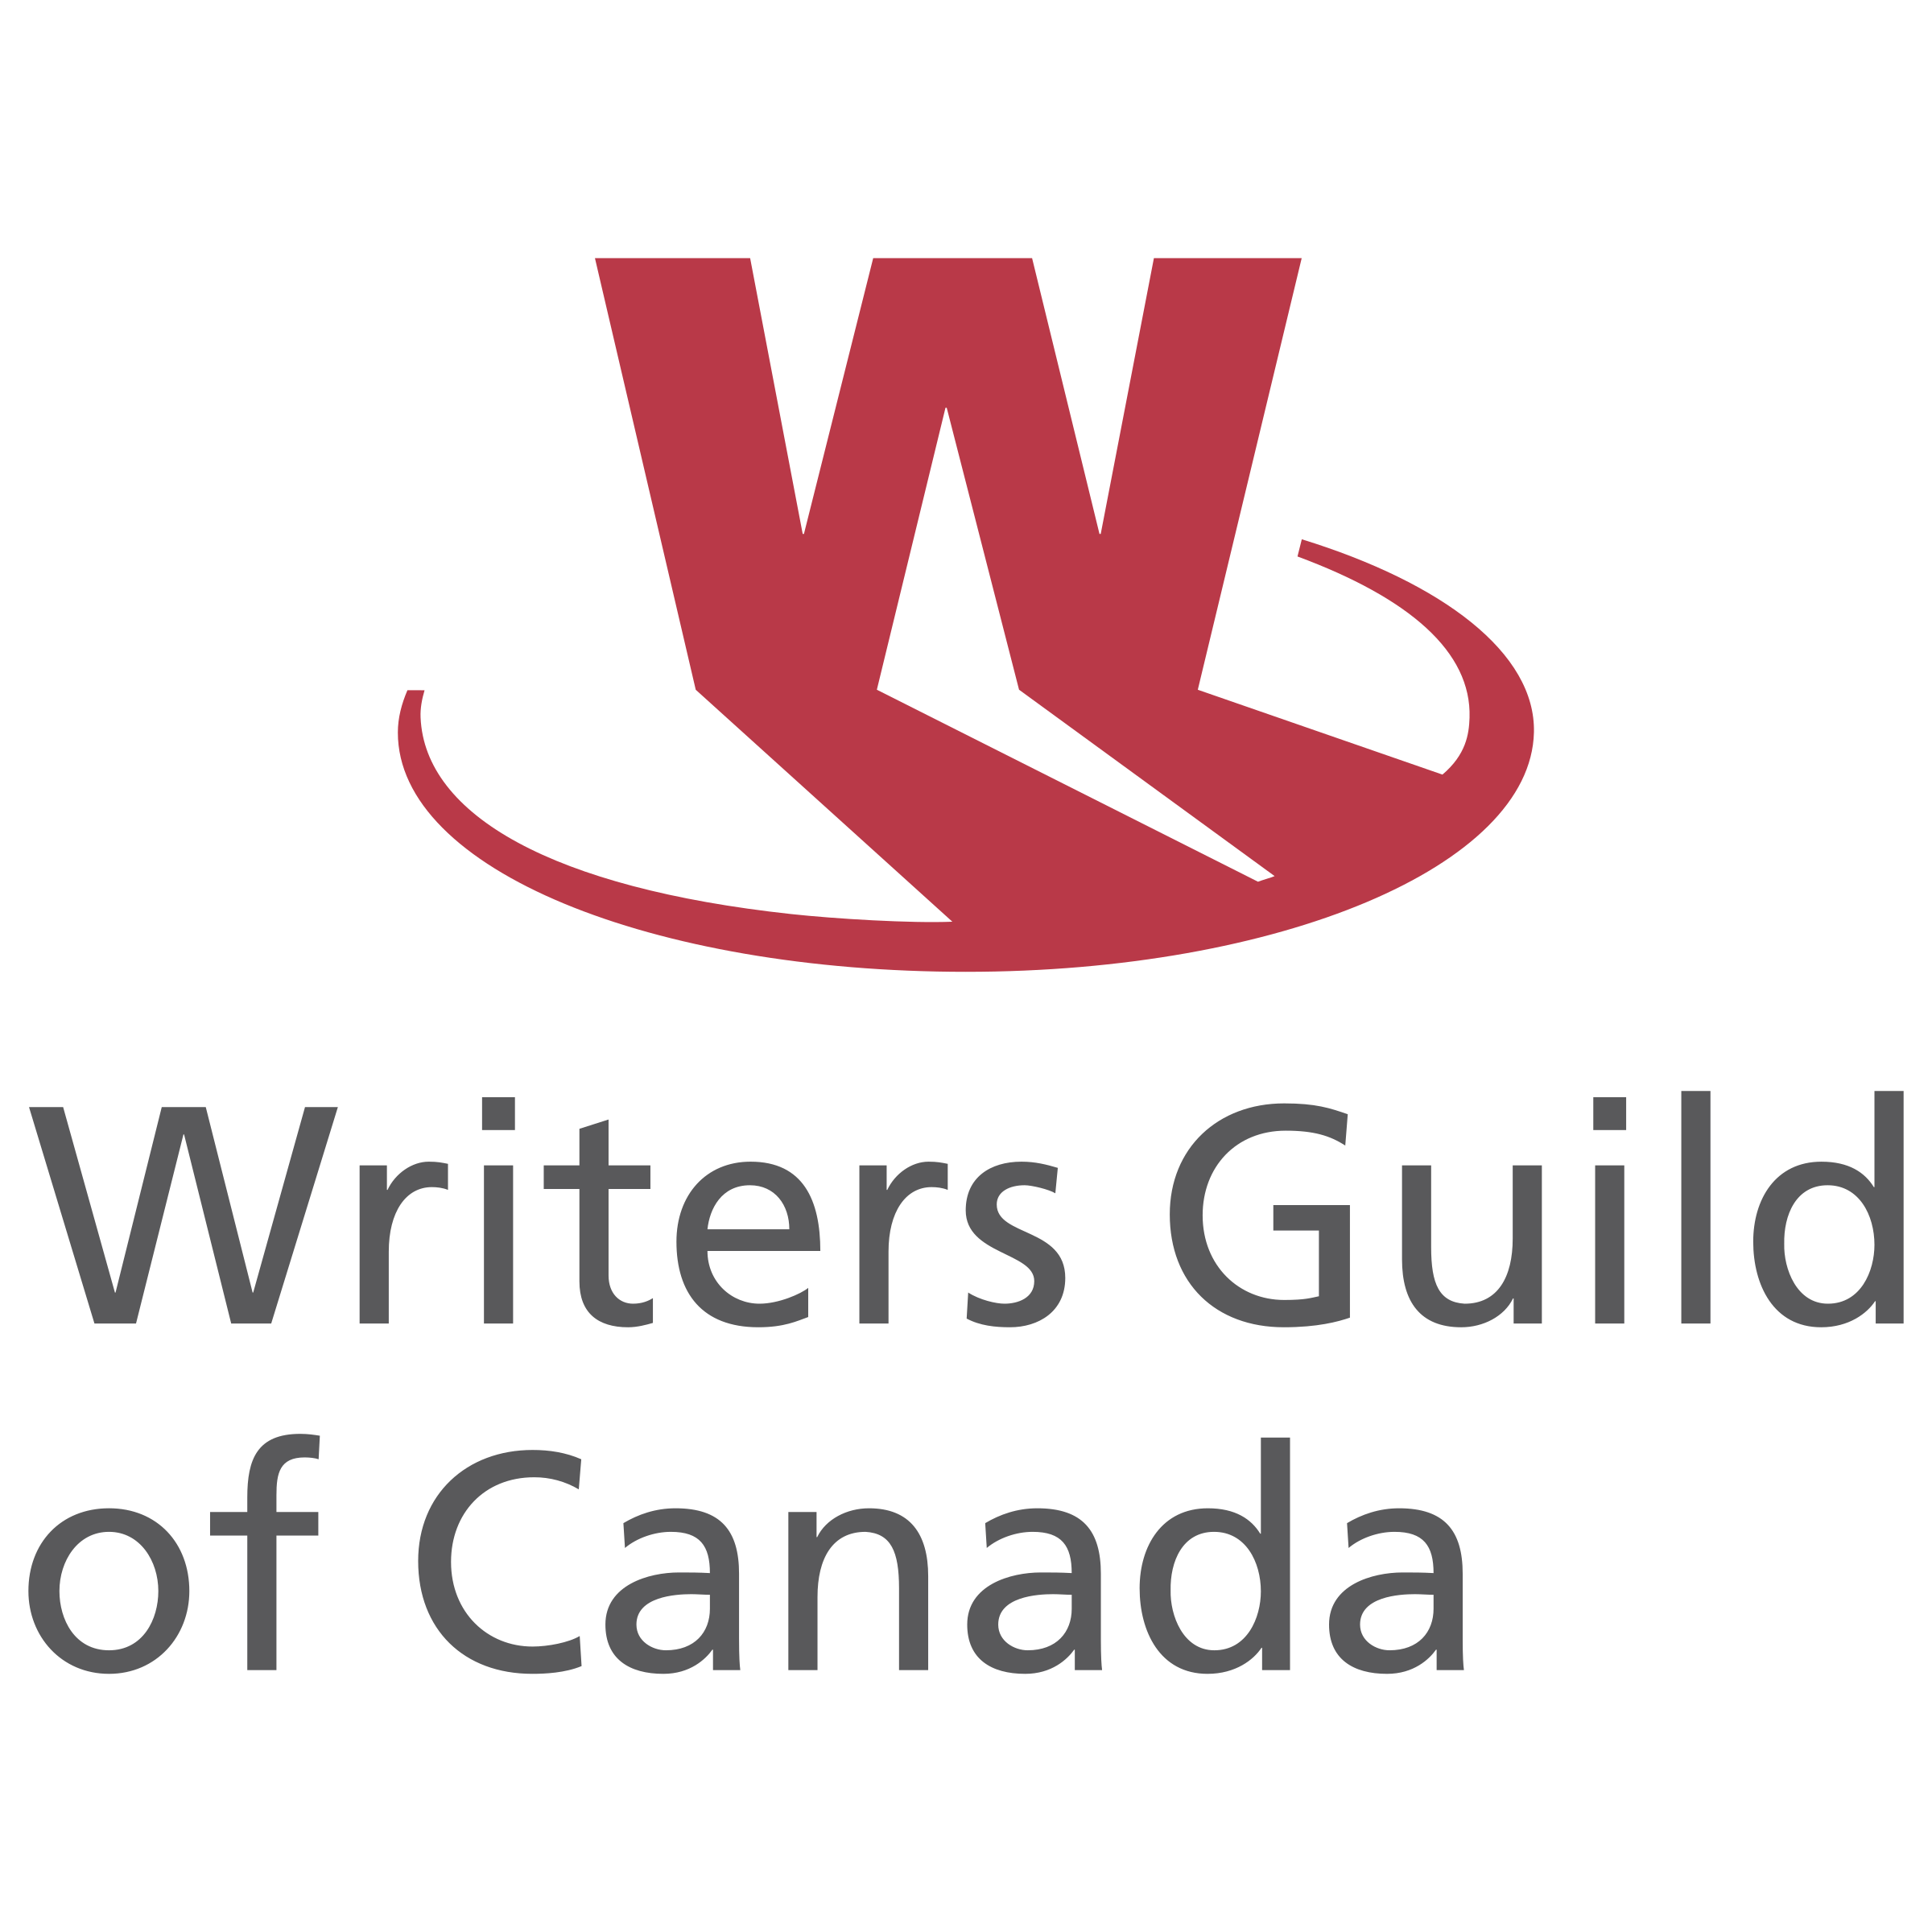 Writer clipart guild. Writers of canada logo